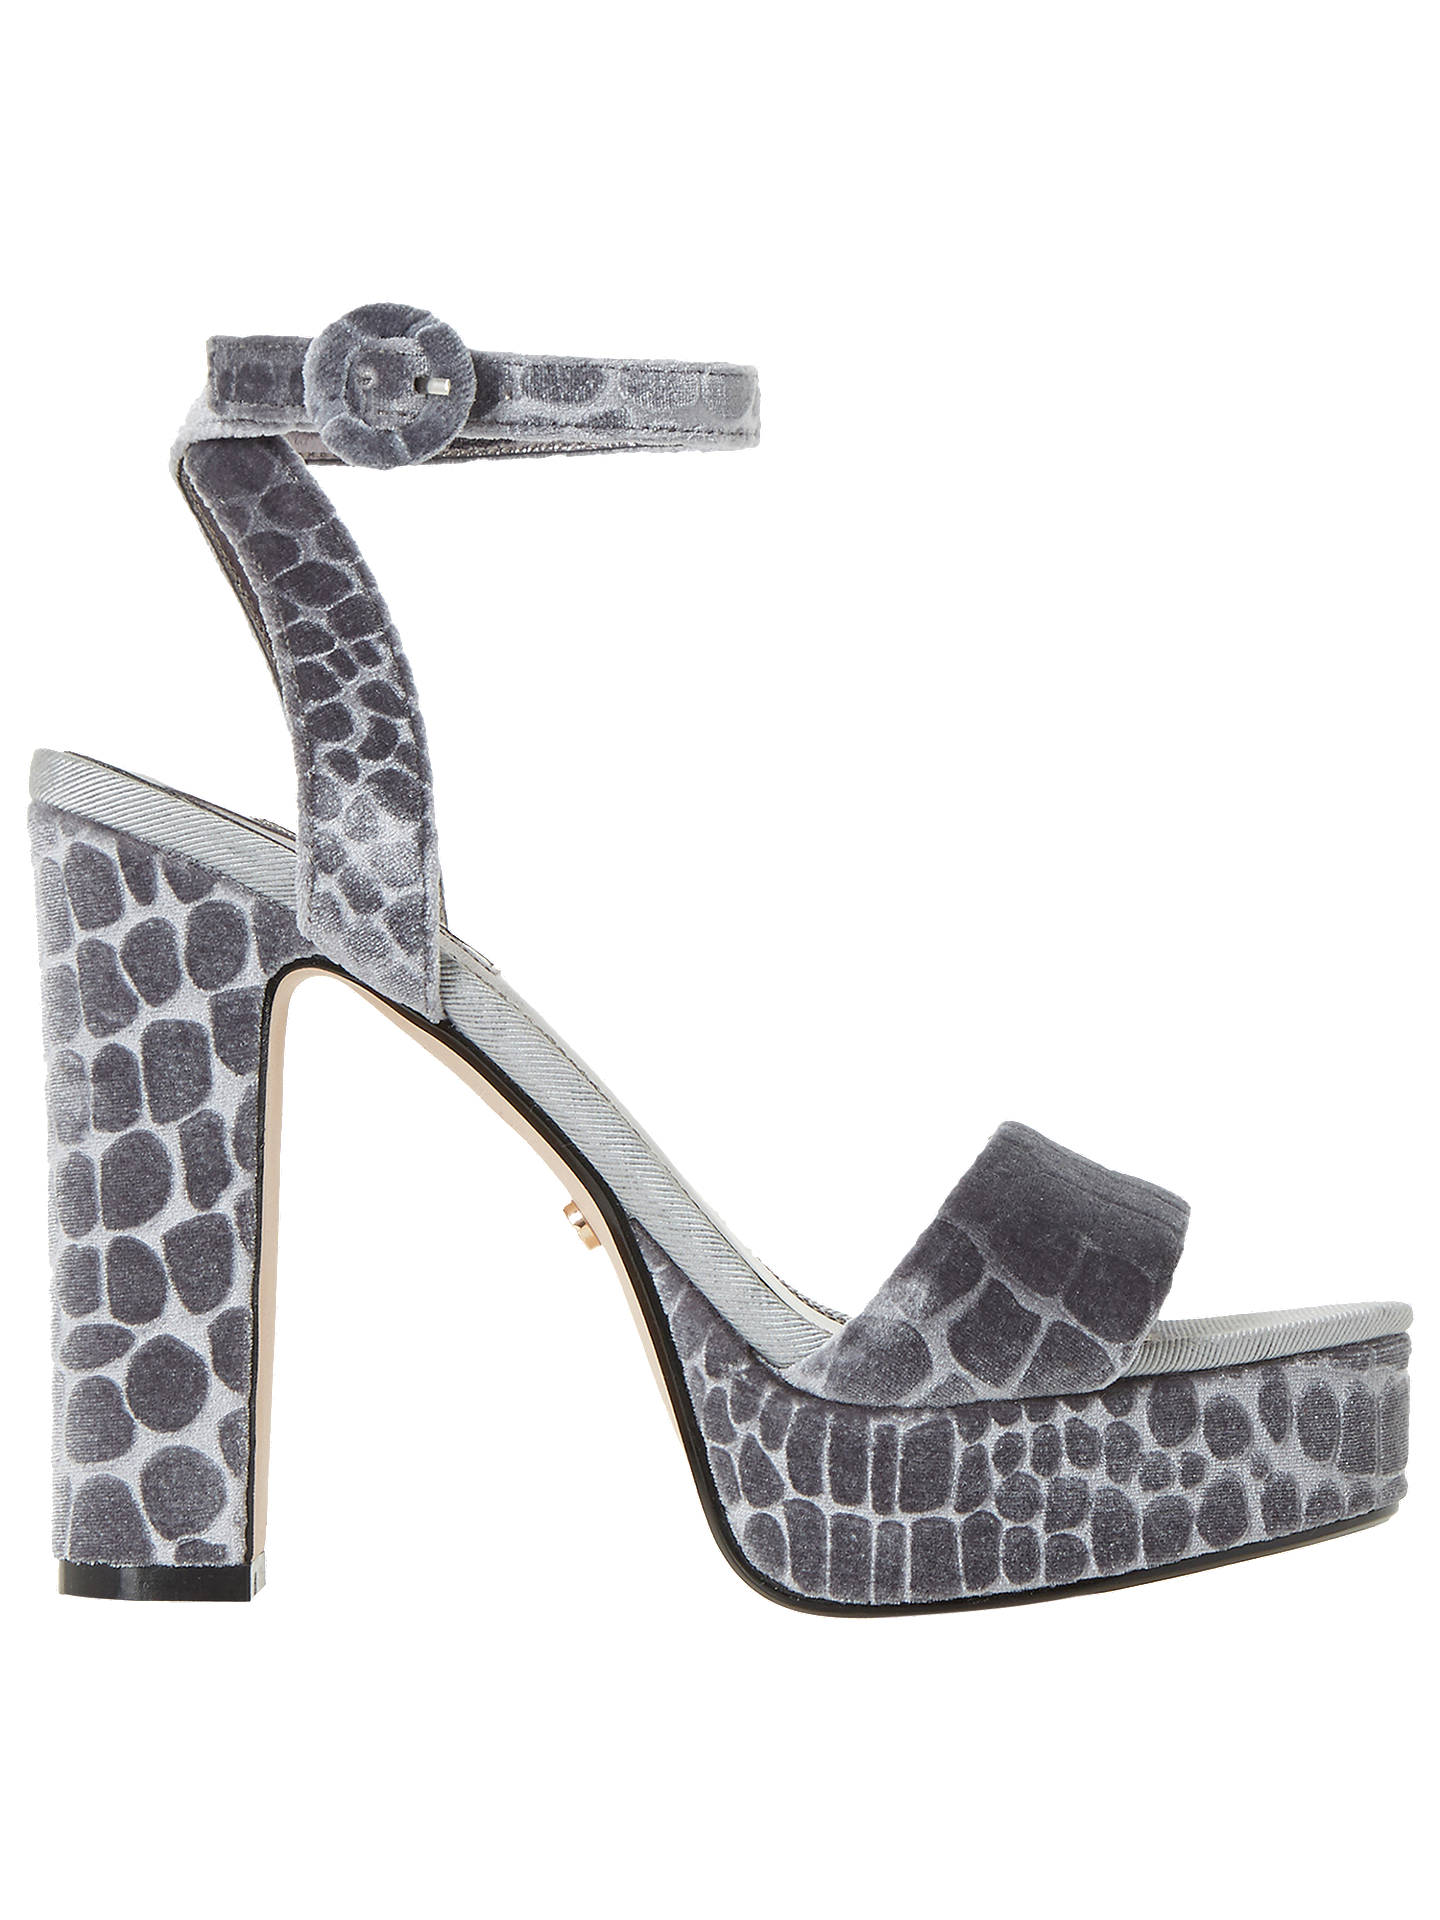 b800b538b6b24 Buy Dune Morisey Platform Block Heeled Sandals, Grey, 3 Online at  johnlewis.com ...